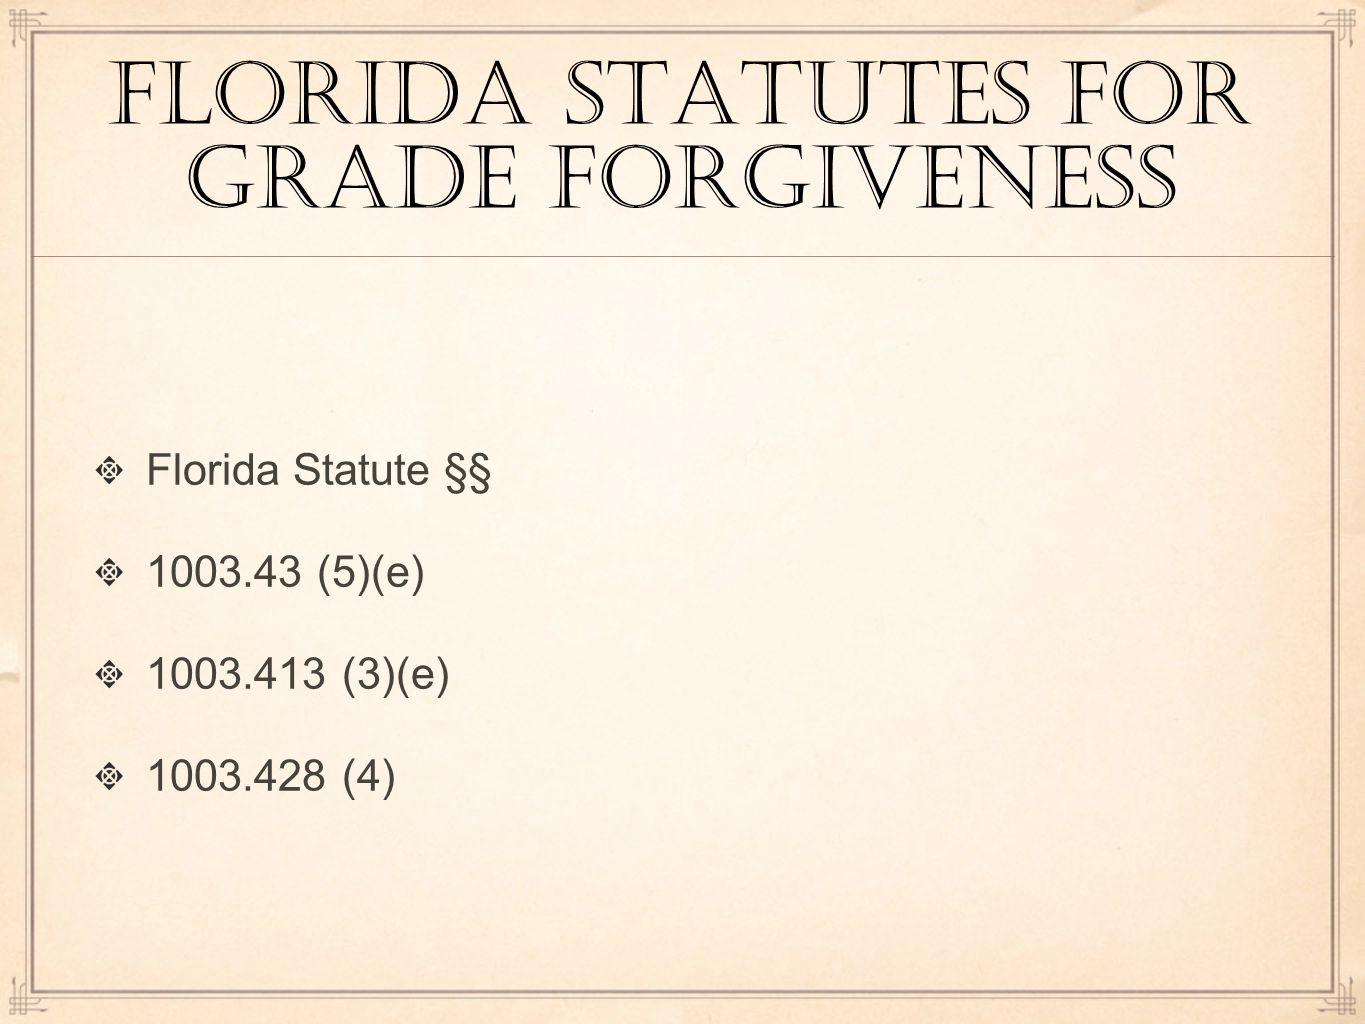 Florida statutes for grade forgiveness Florida Statute §§ 1003.43 (5)(e) 1003.413 (3)(e) 1003.428 (4)